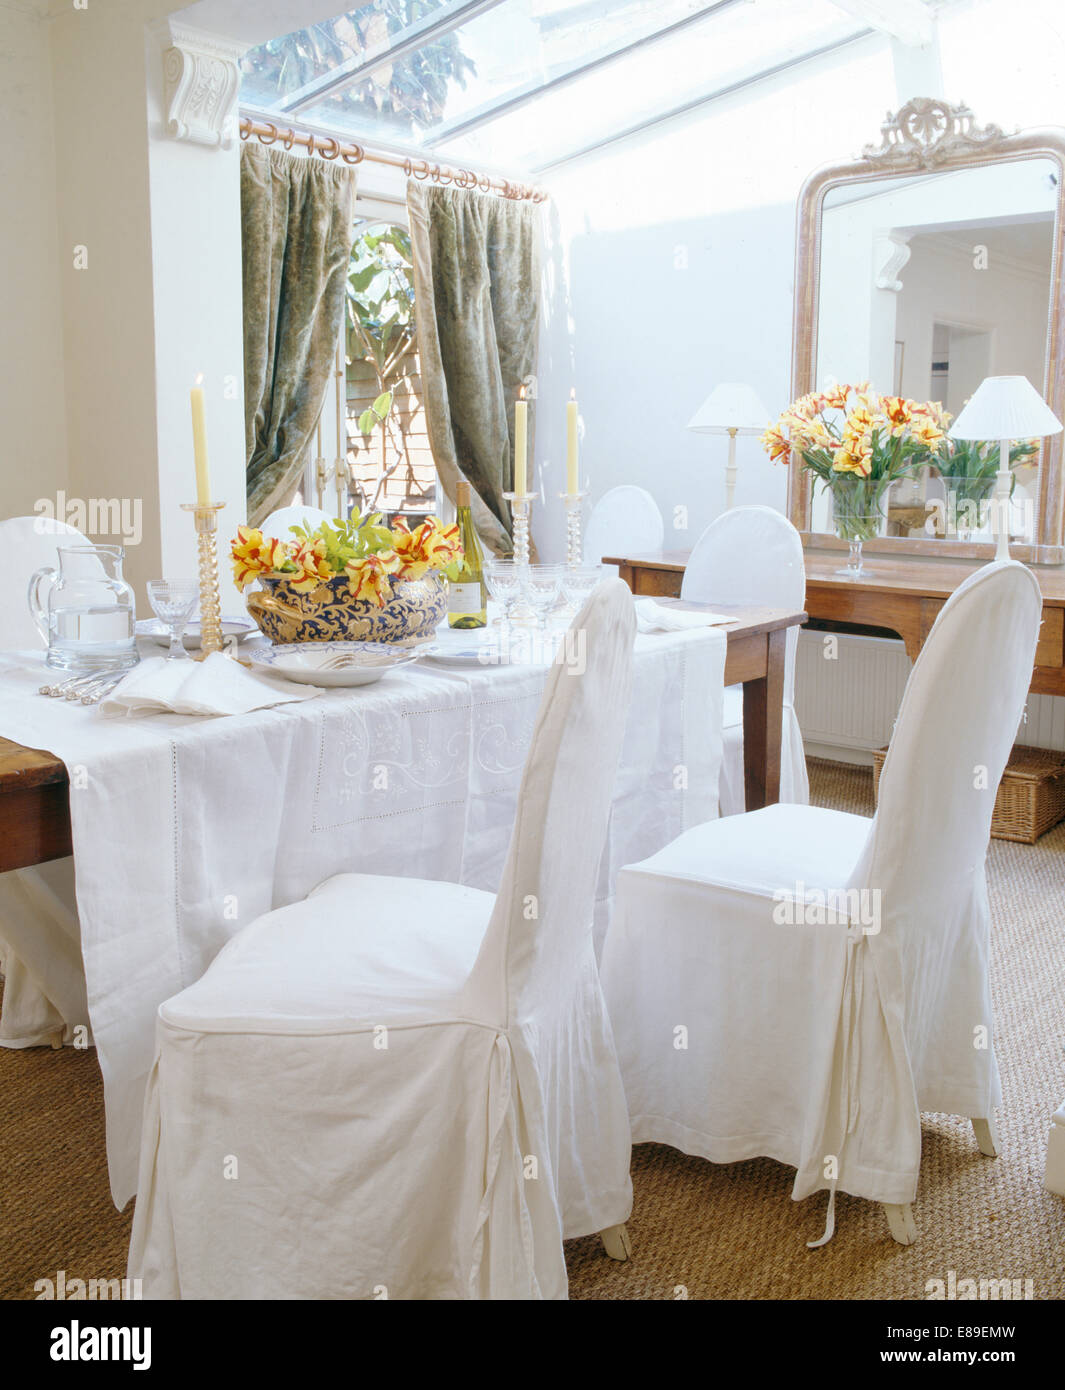 White Loose Covers On Chairs At Table With Linen Cloth In Small Conservatory Dining Room